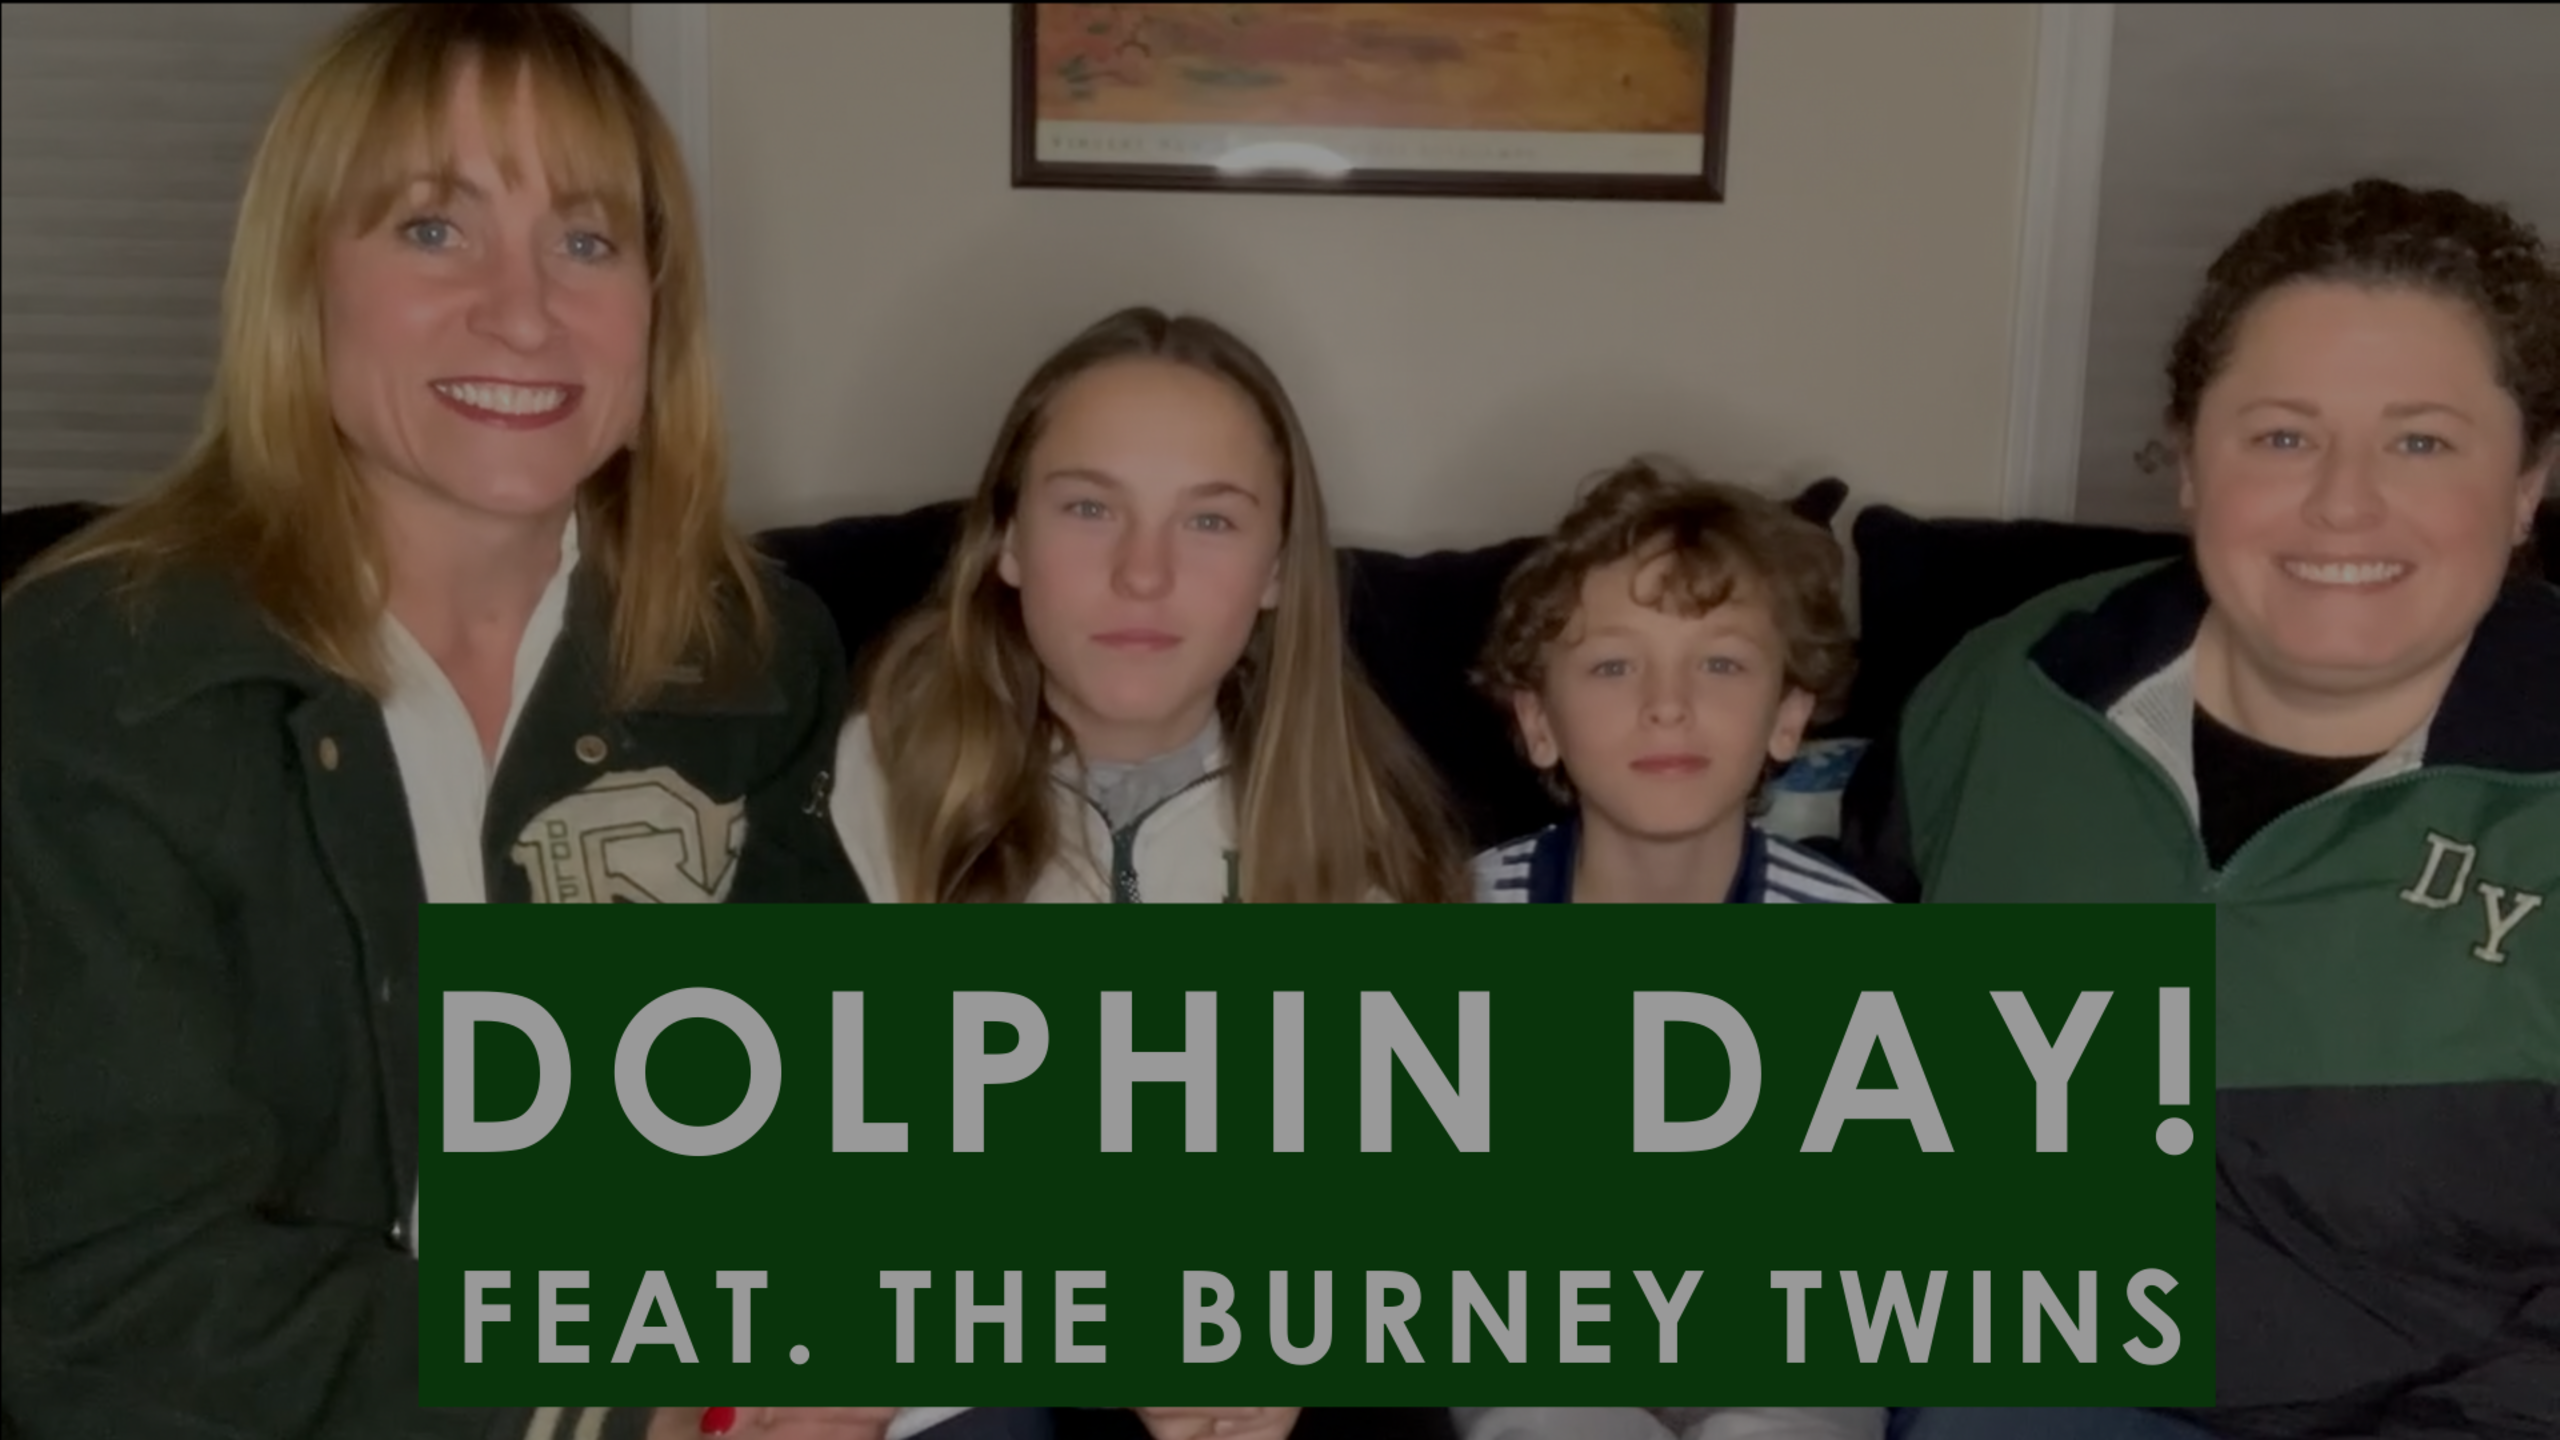 Episode 80: Dolphin Day (feat. the Burney Twins!)